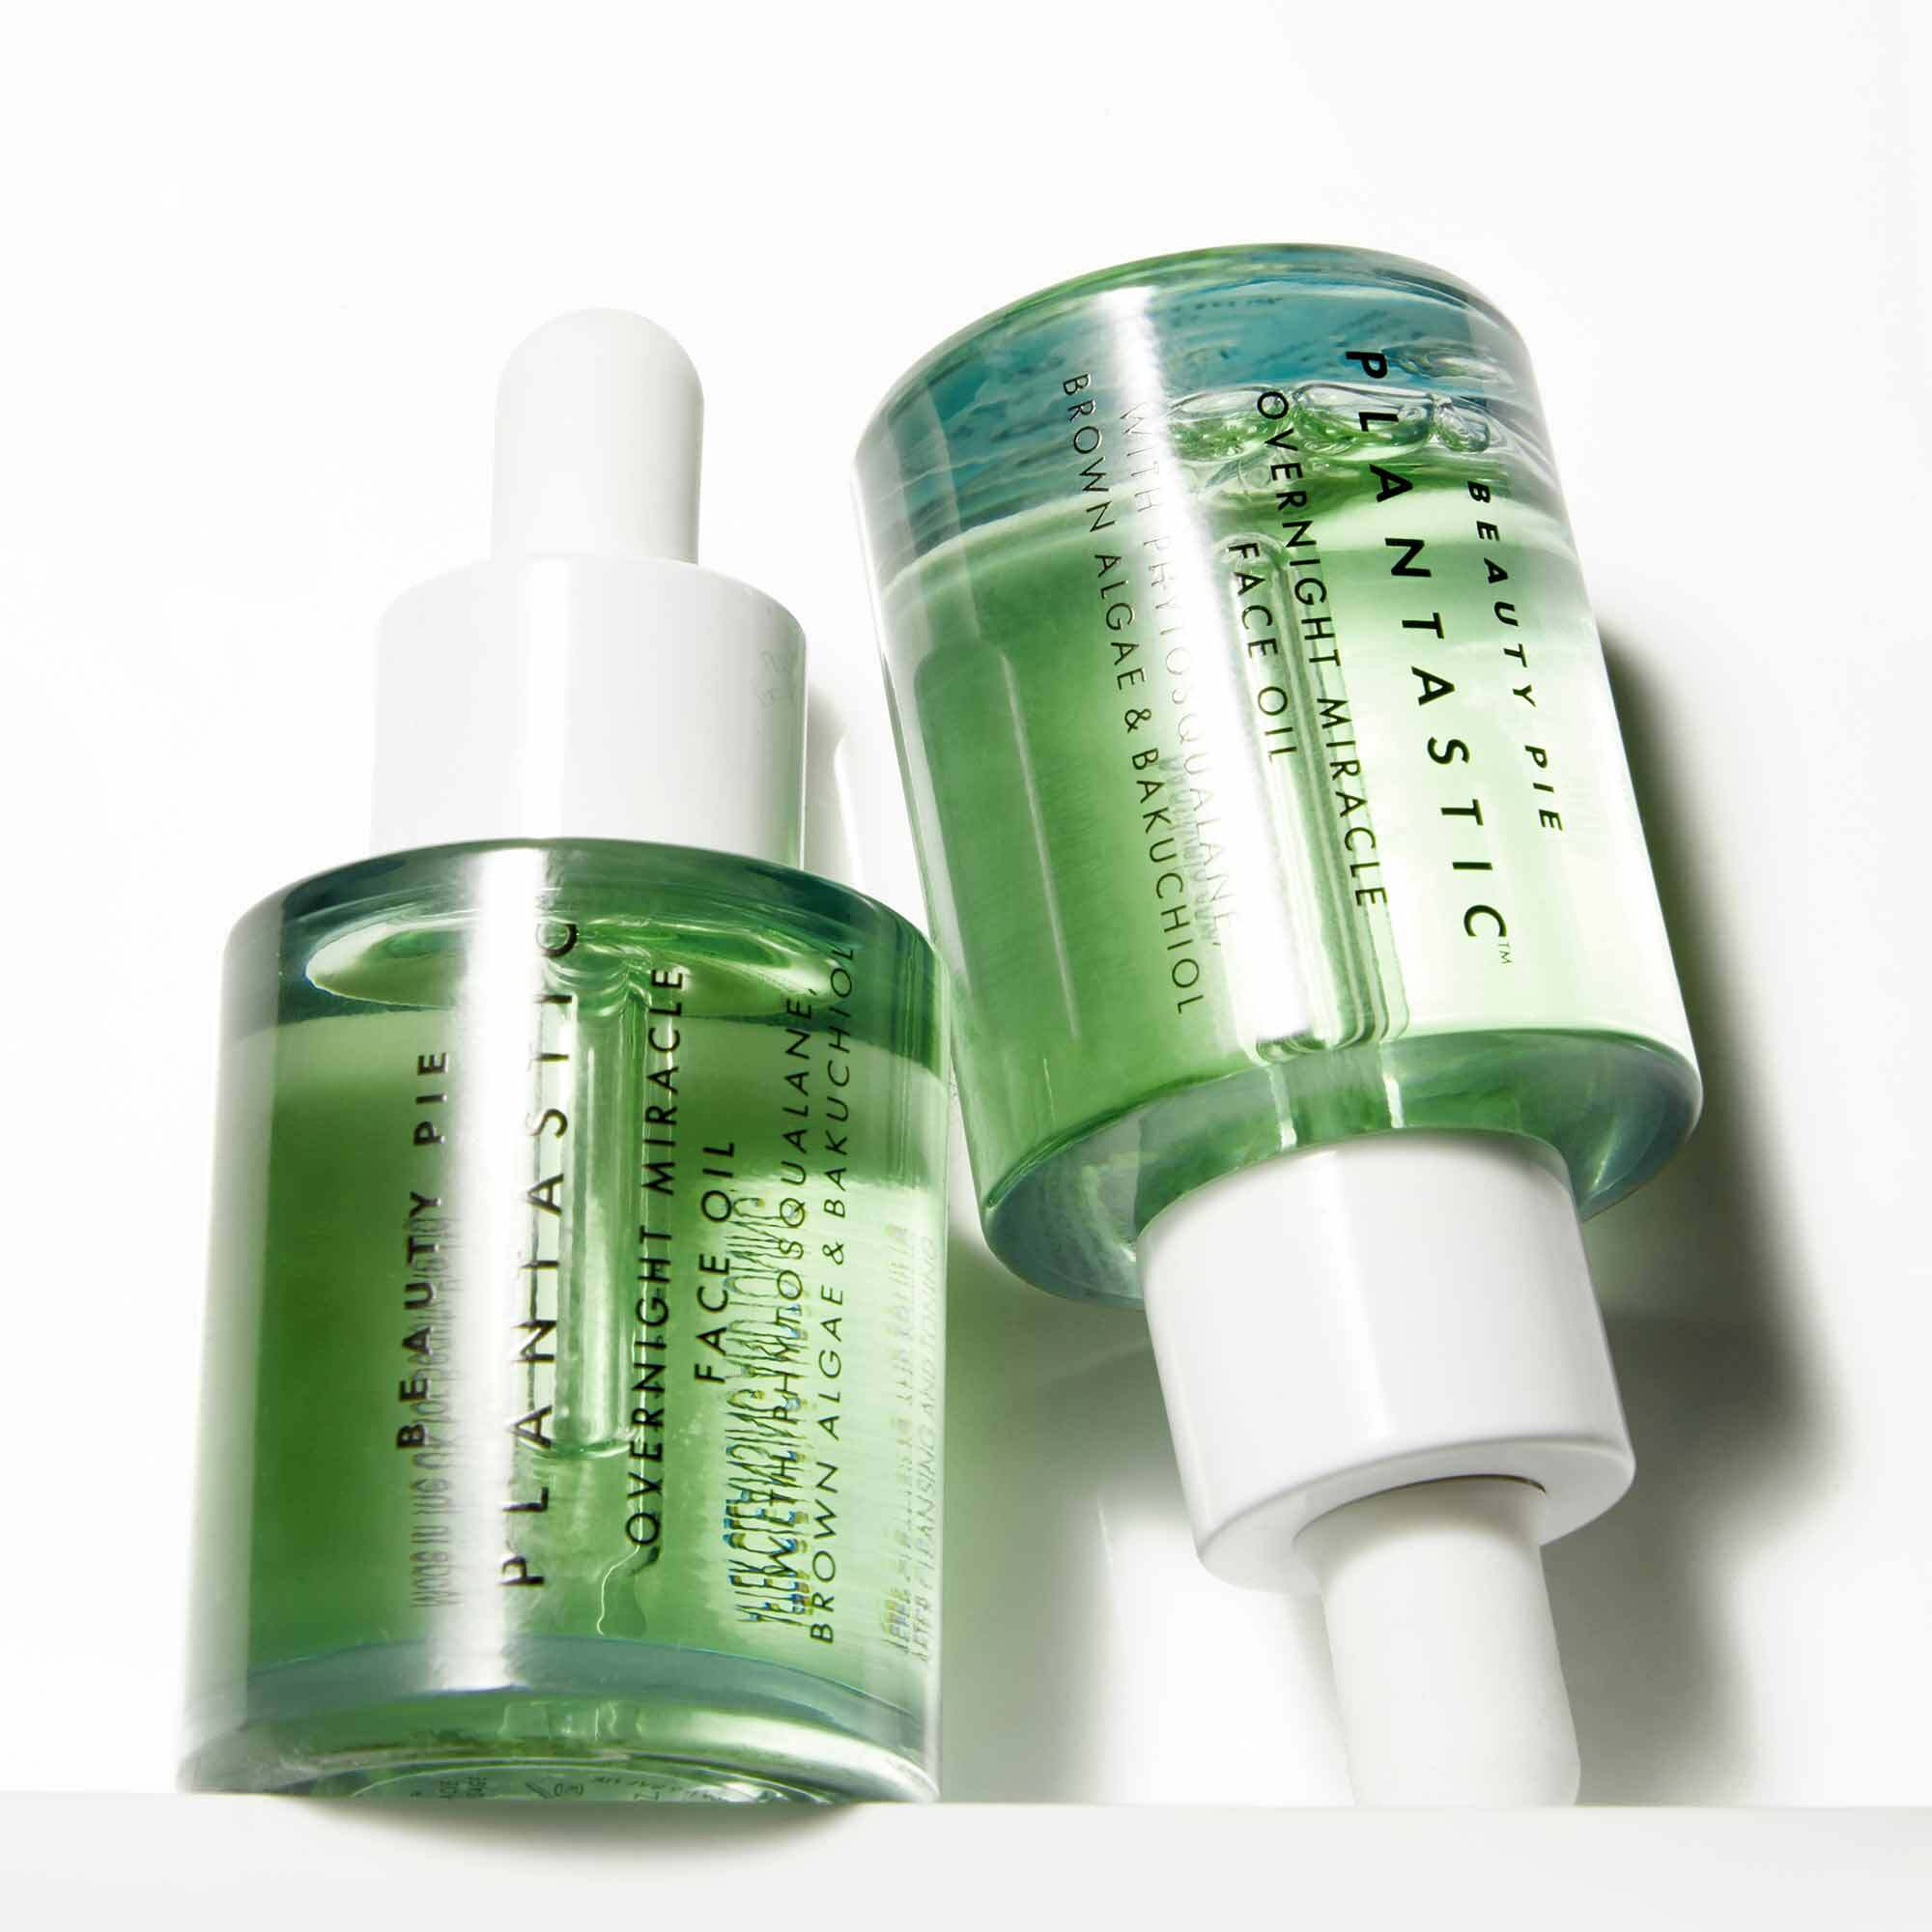 Plantastic™ Overnight Miracle Face Oil by Beauty Pie